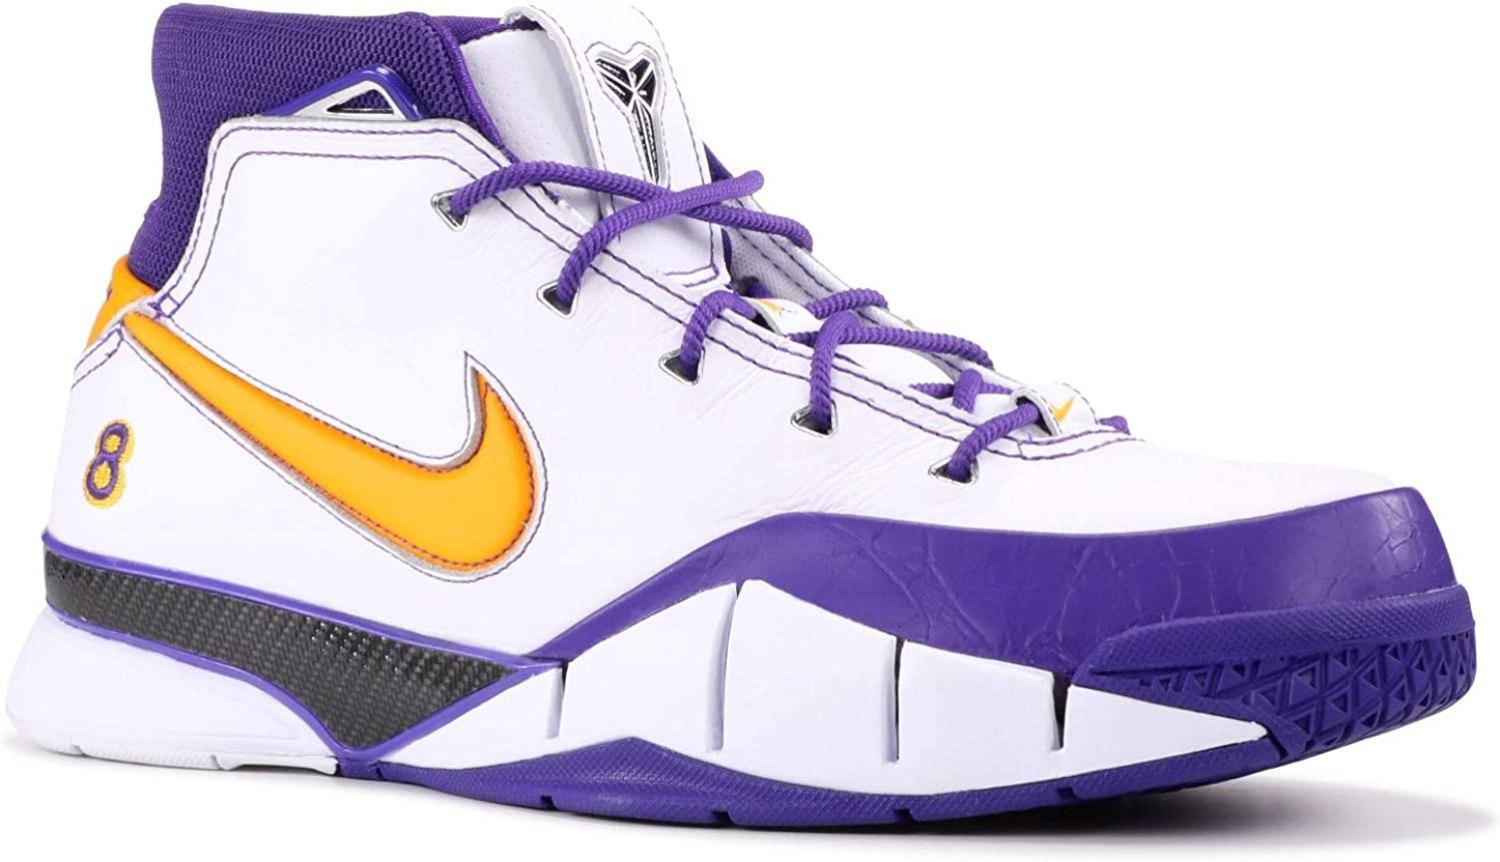 nike kobe 1 protro lakers colorway